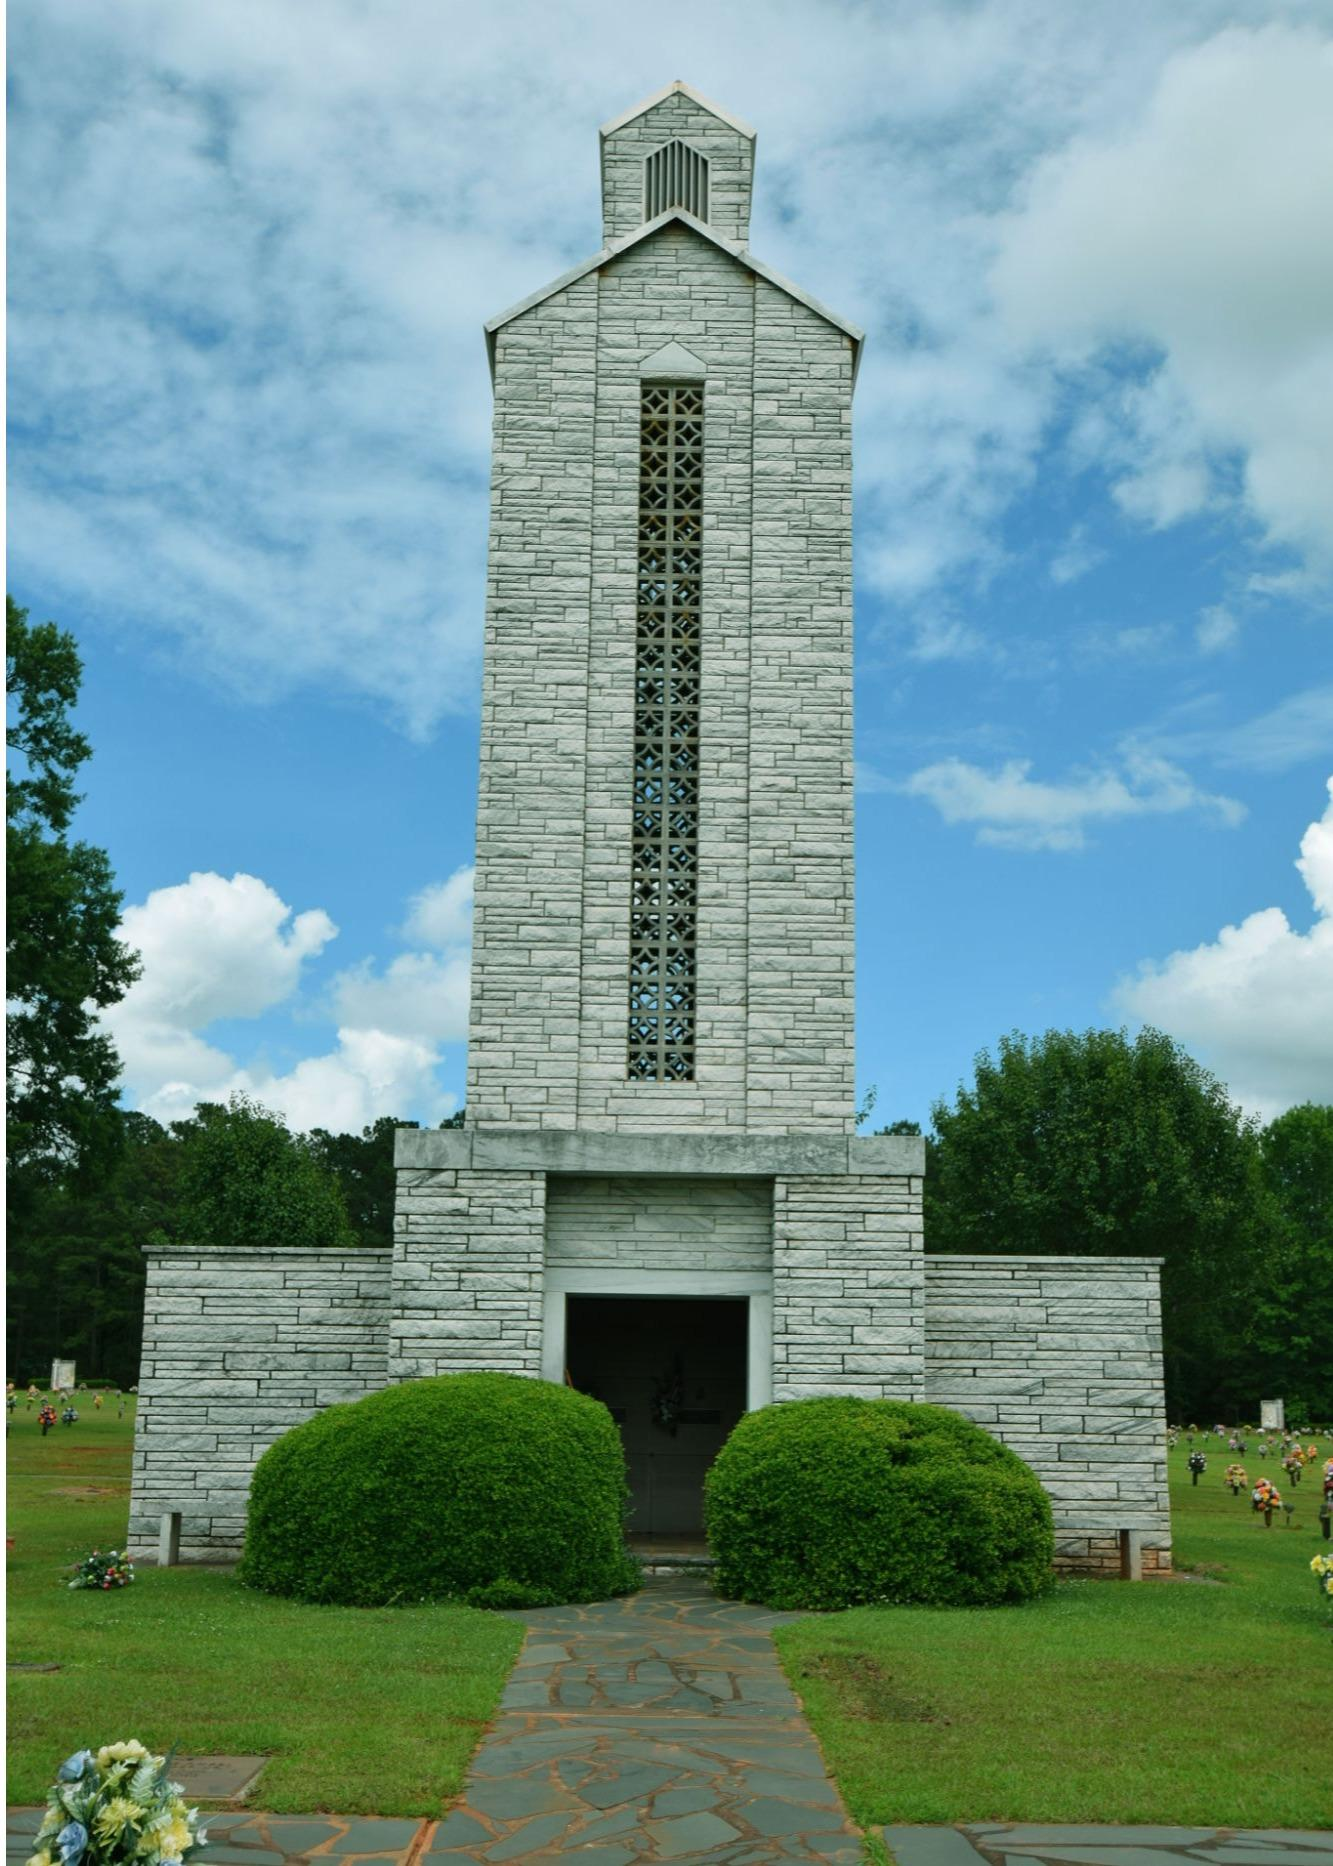 Greenwood Memorial Gardens & Mausoleum image 5